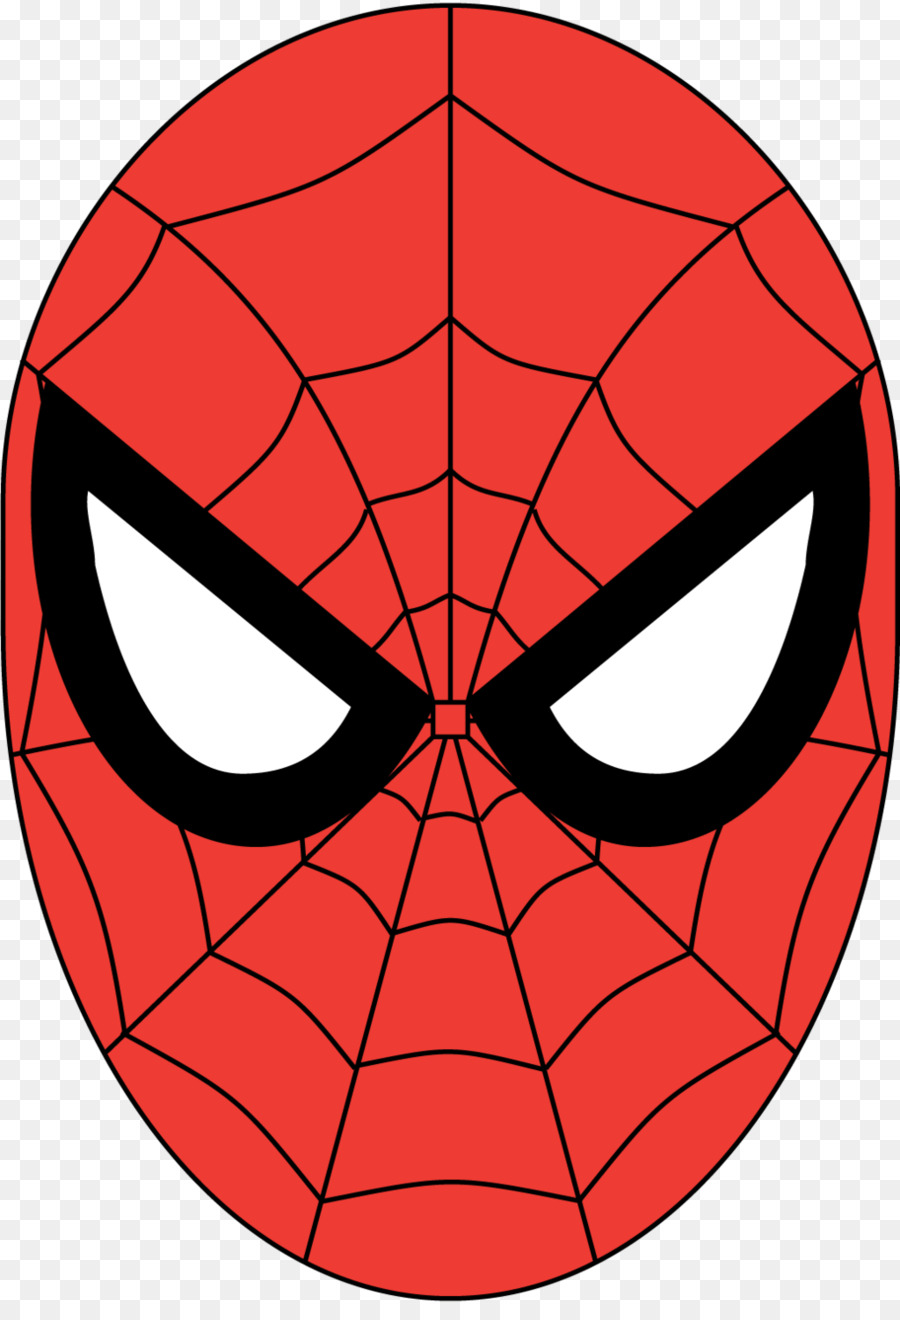 spider man miles morales youtube clip art iron spiderman png rh kisspng com Spider-Man Web spiderman face clipart black and white